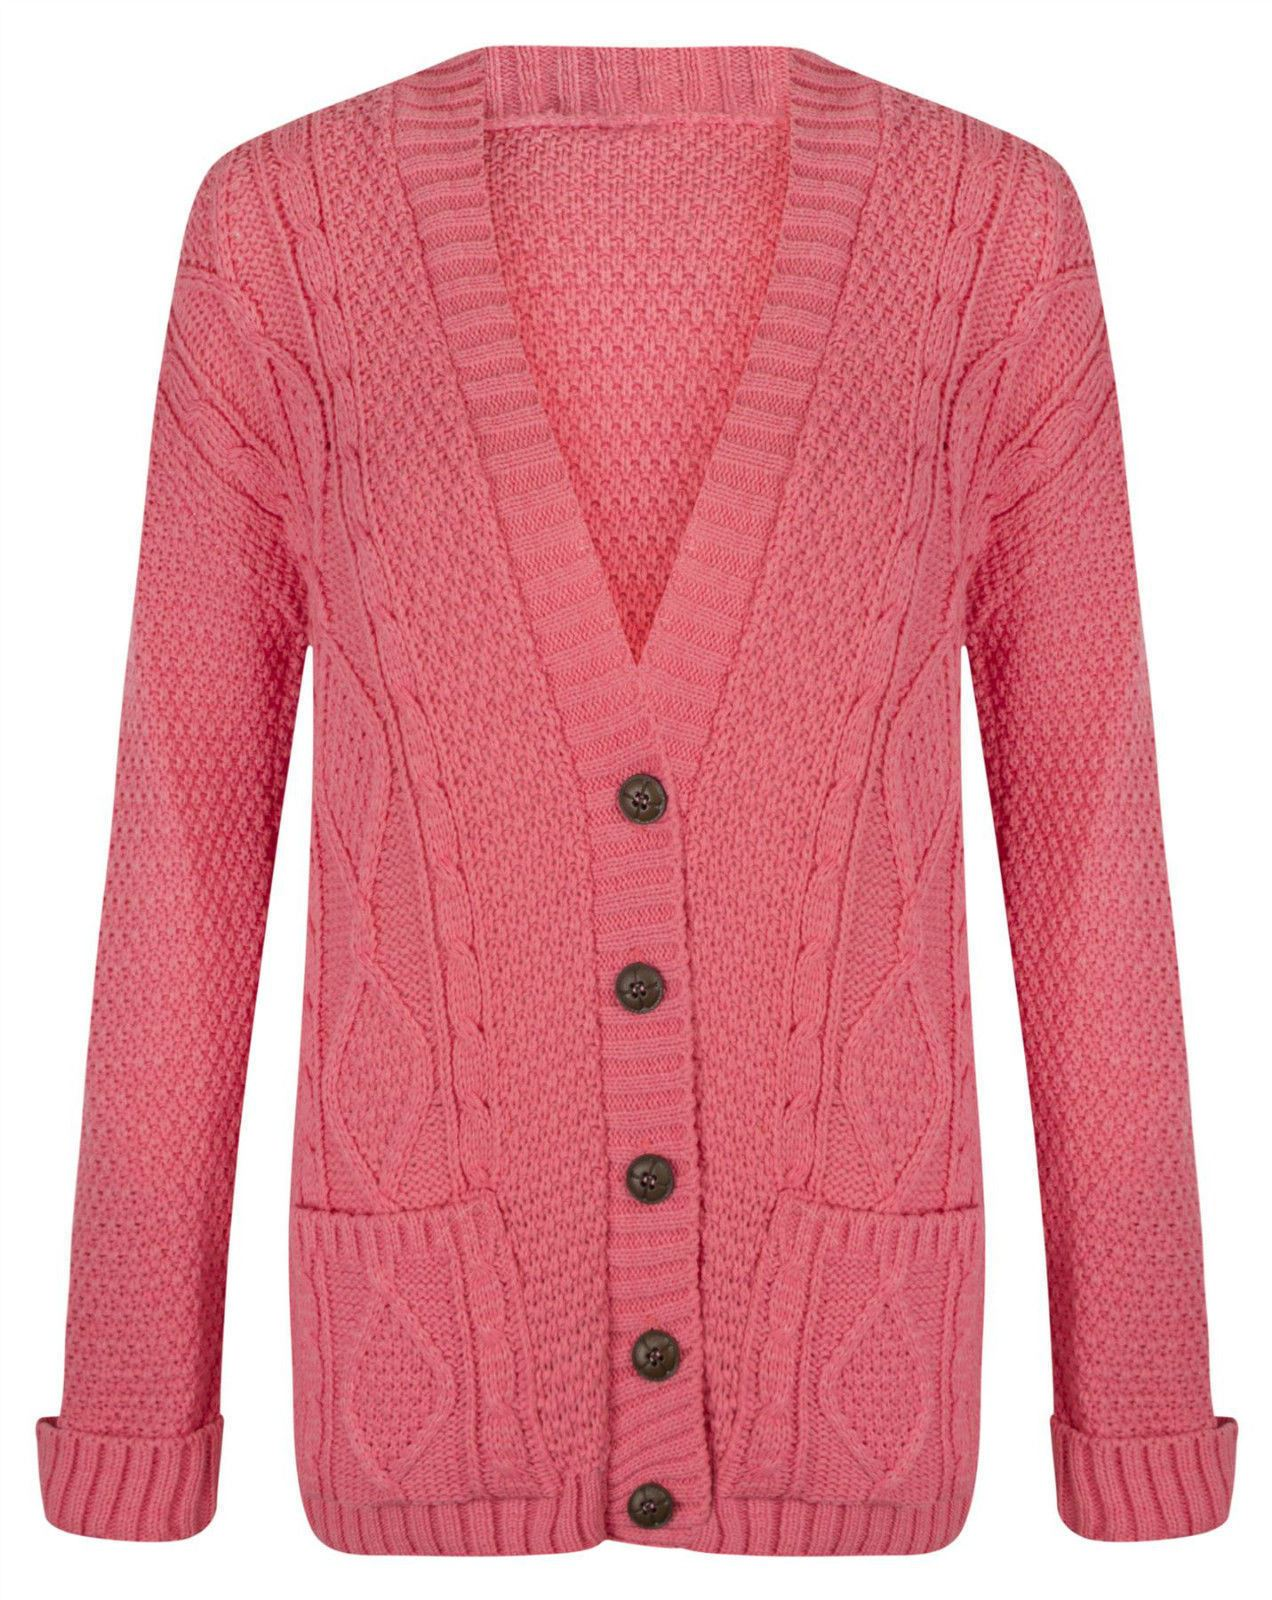 Knitting Cardigan For Ladies : Womens ladies chunky cable knit cardigan button long